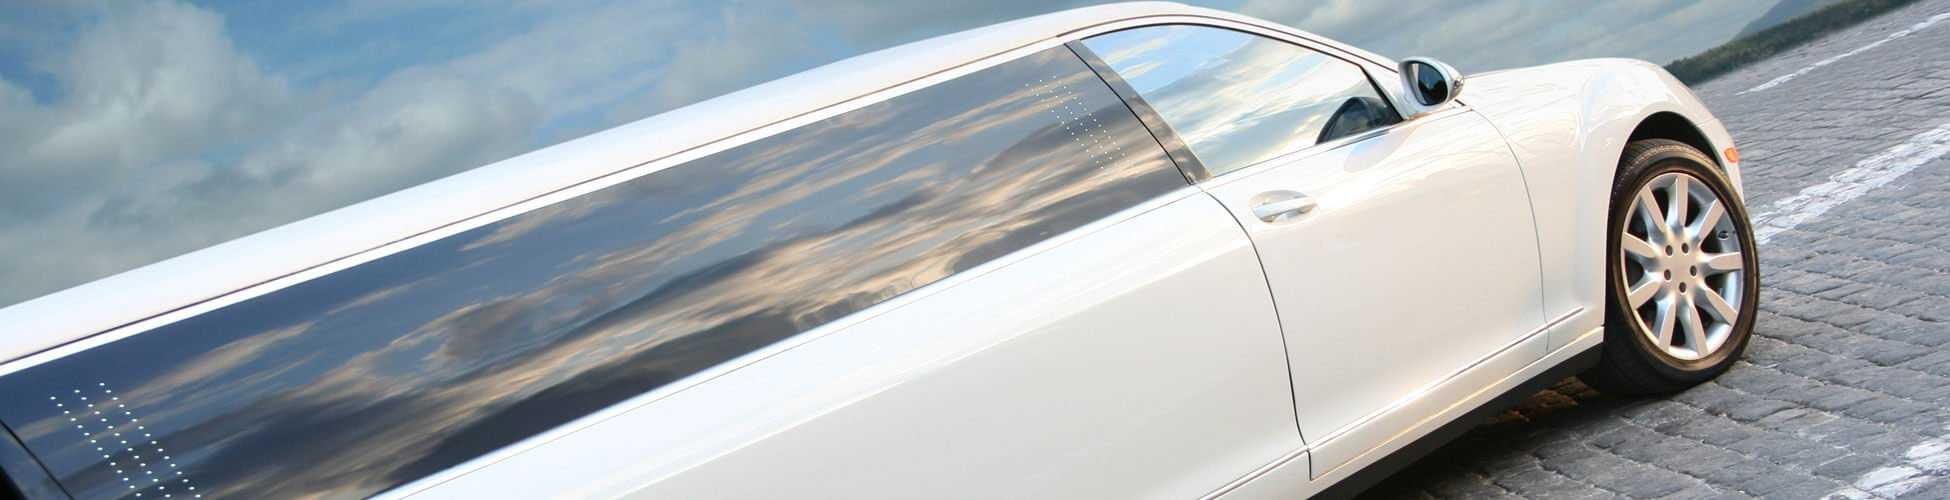 limousines banner photo - Home